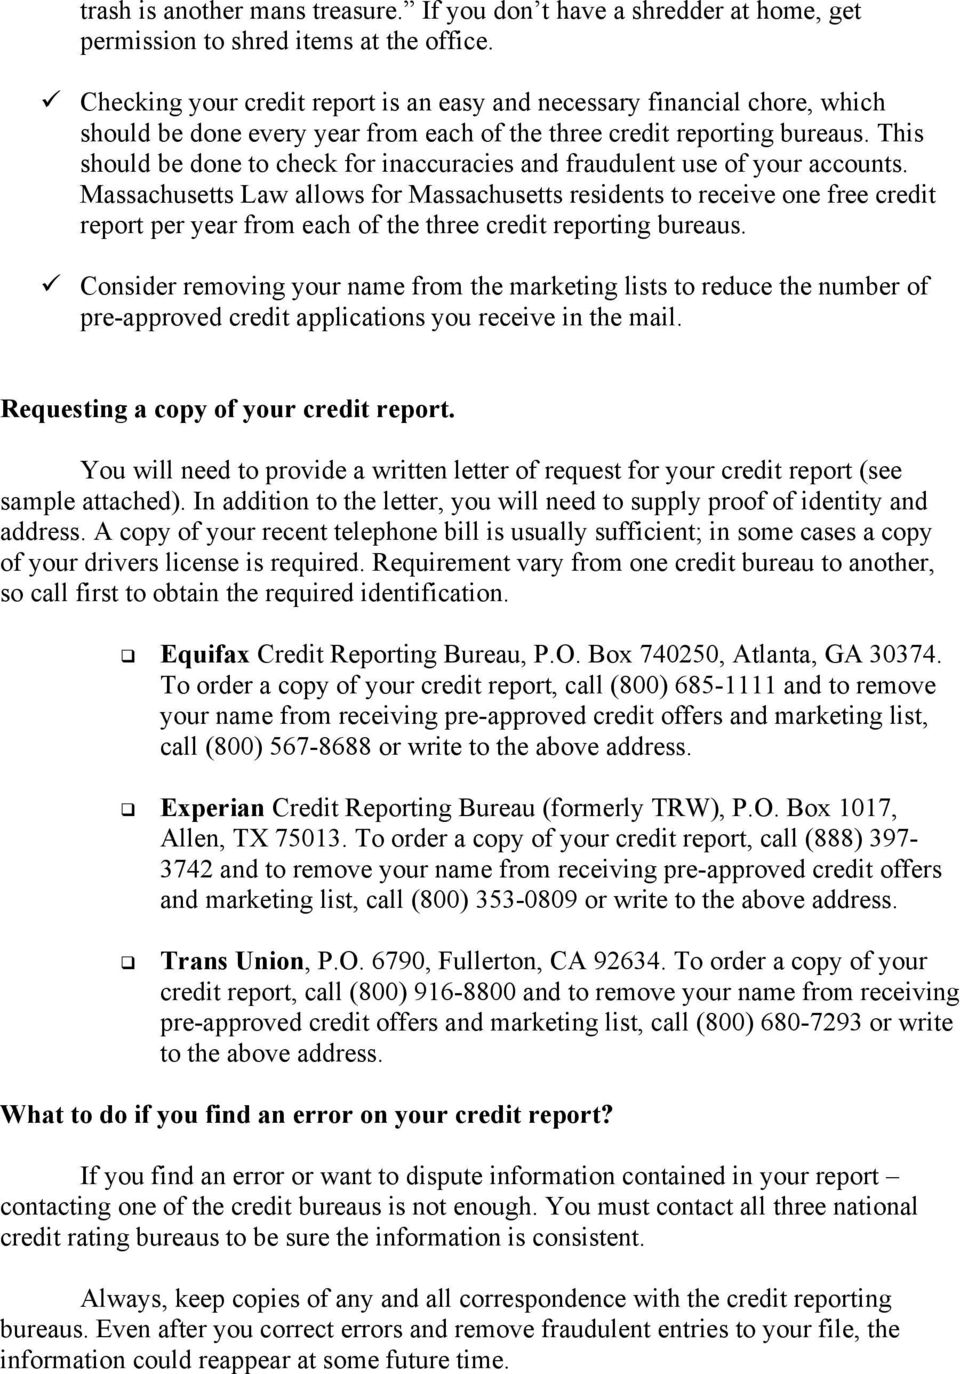 Credit Card Identity Theft Prevention Tips Pdf Free Download